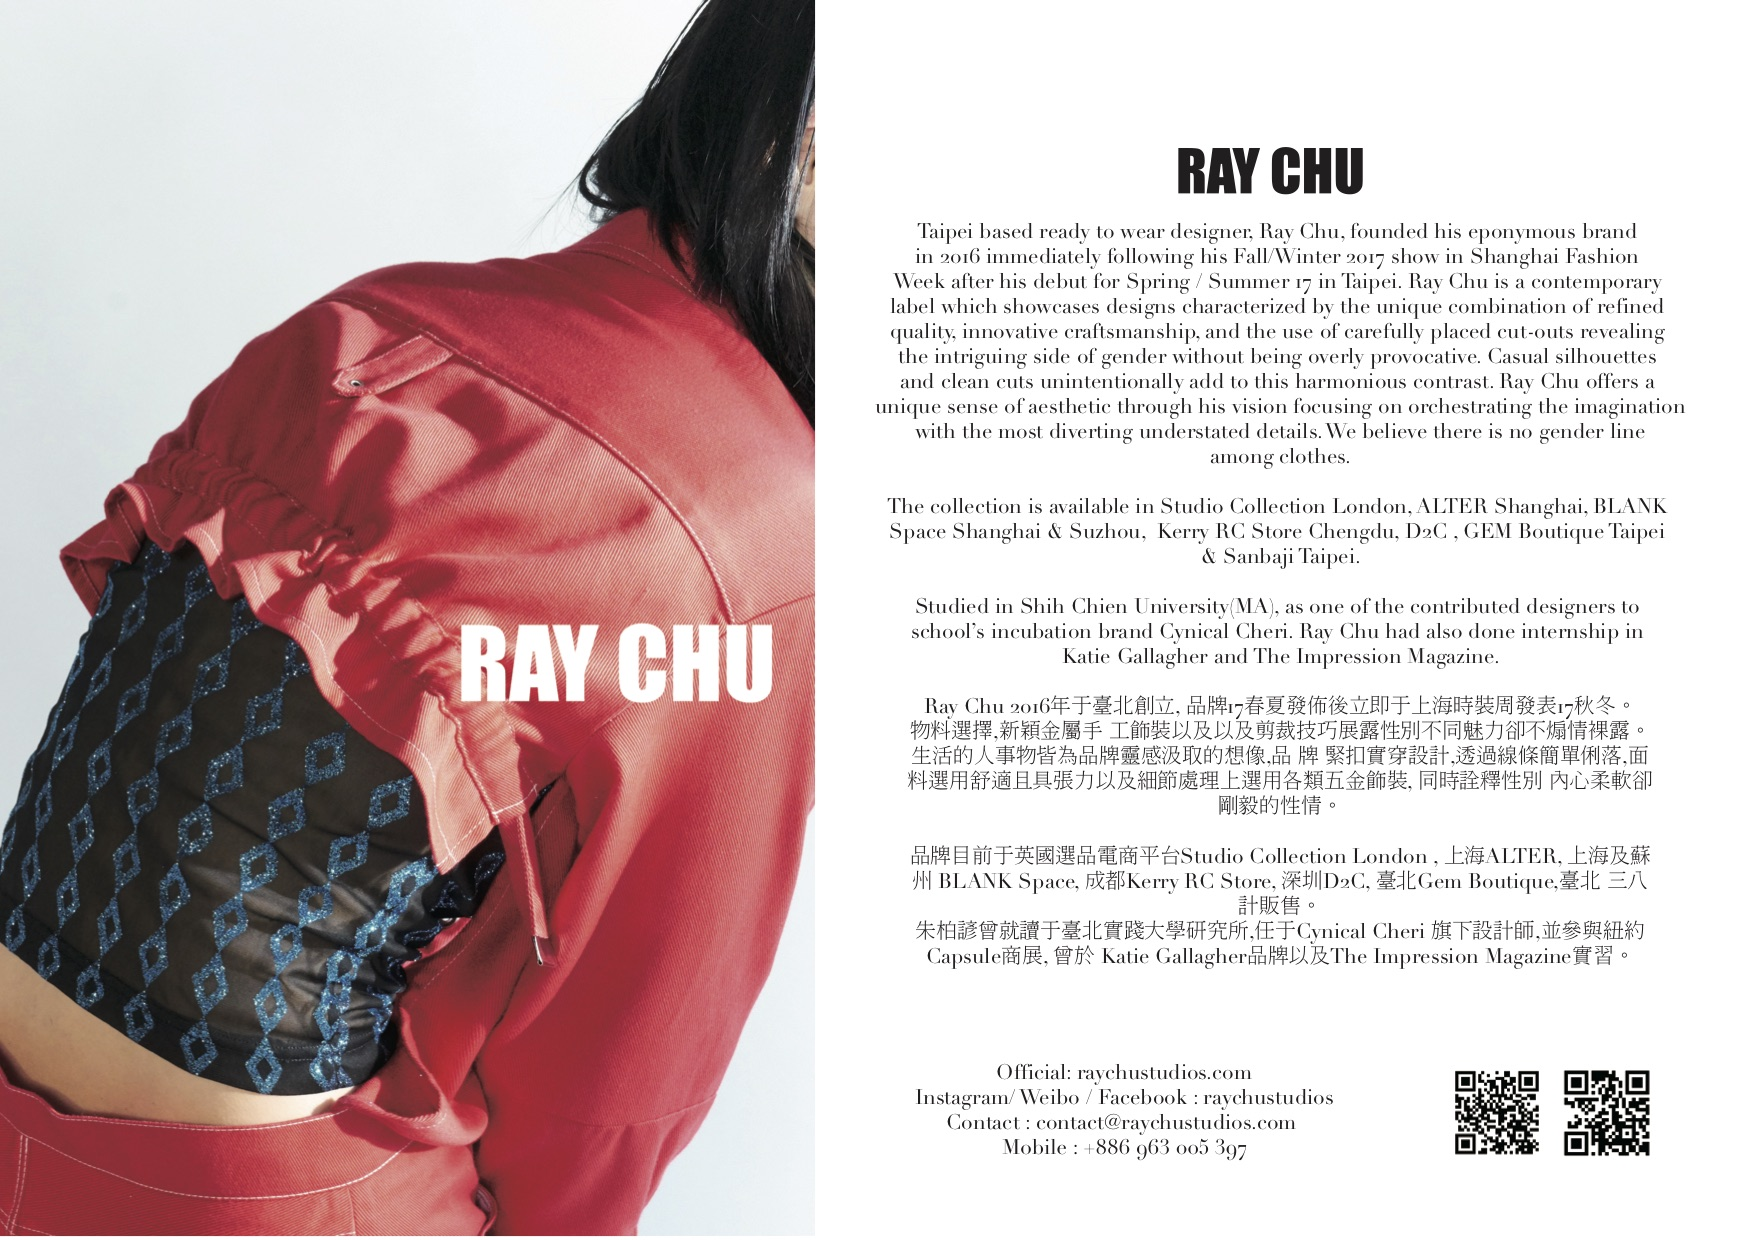 RAY CHU_BRAND INTRO.compressed.jpg